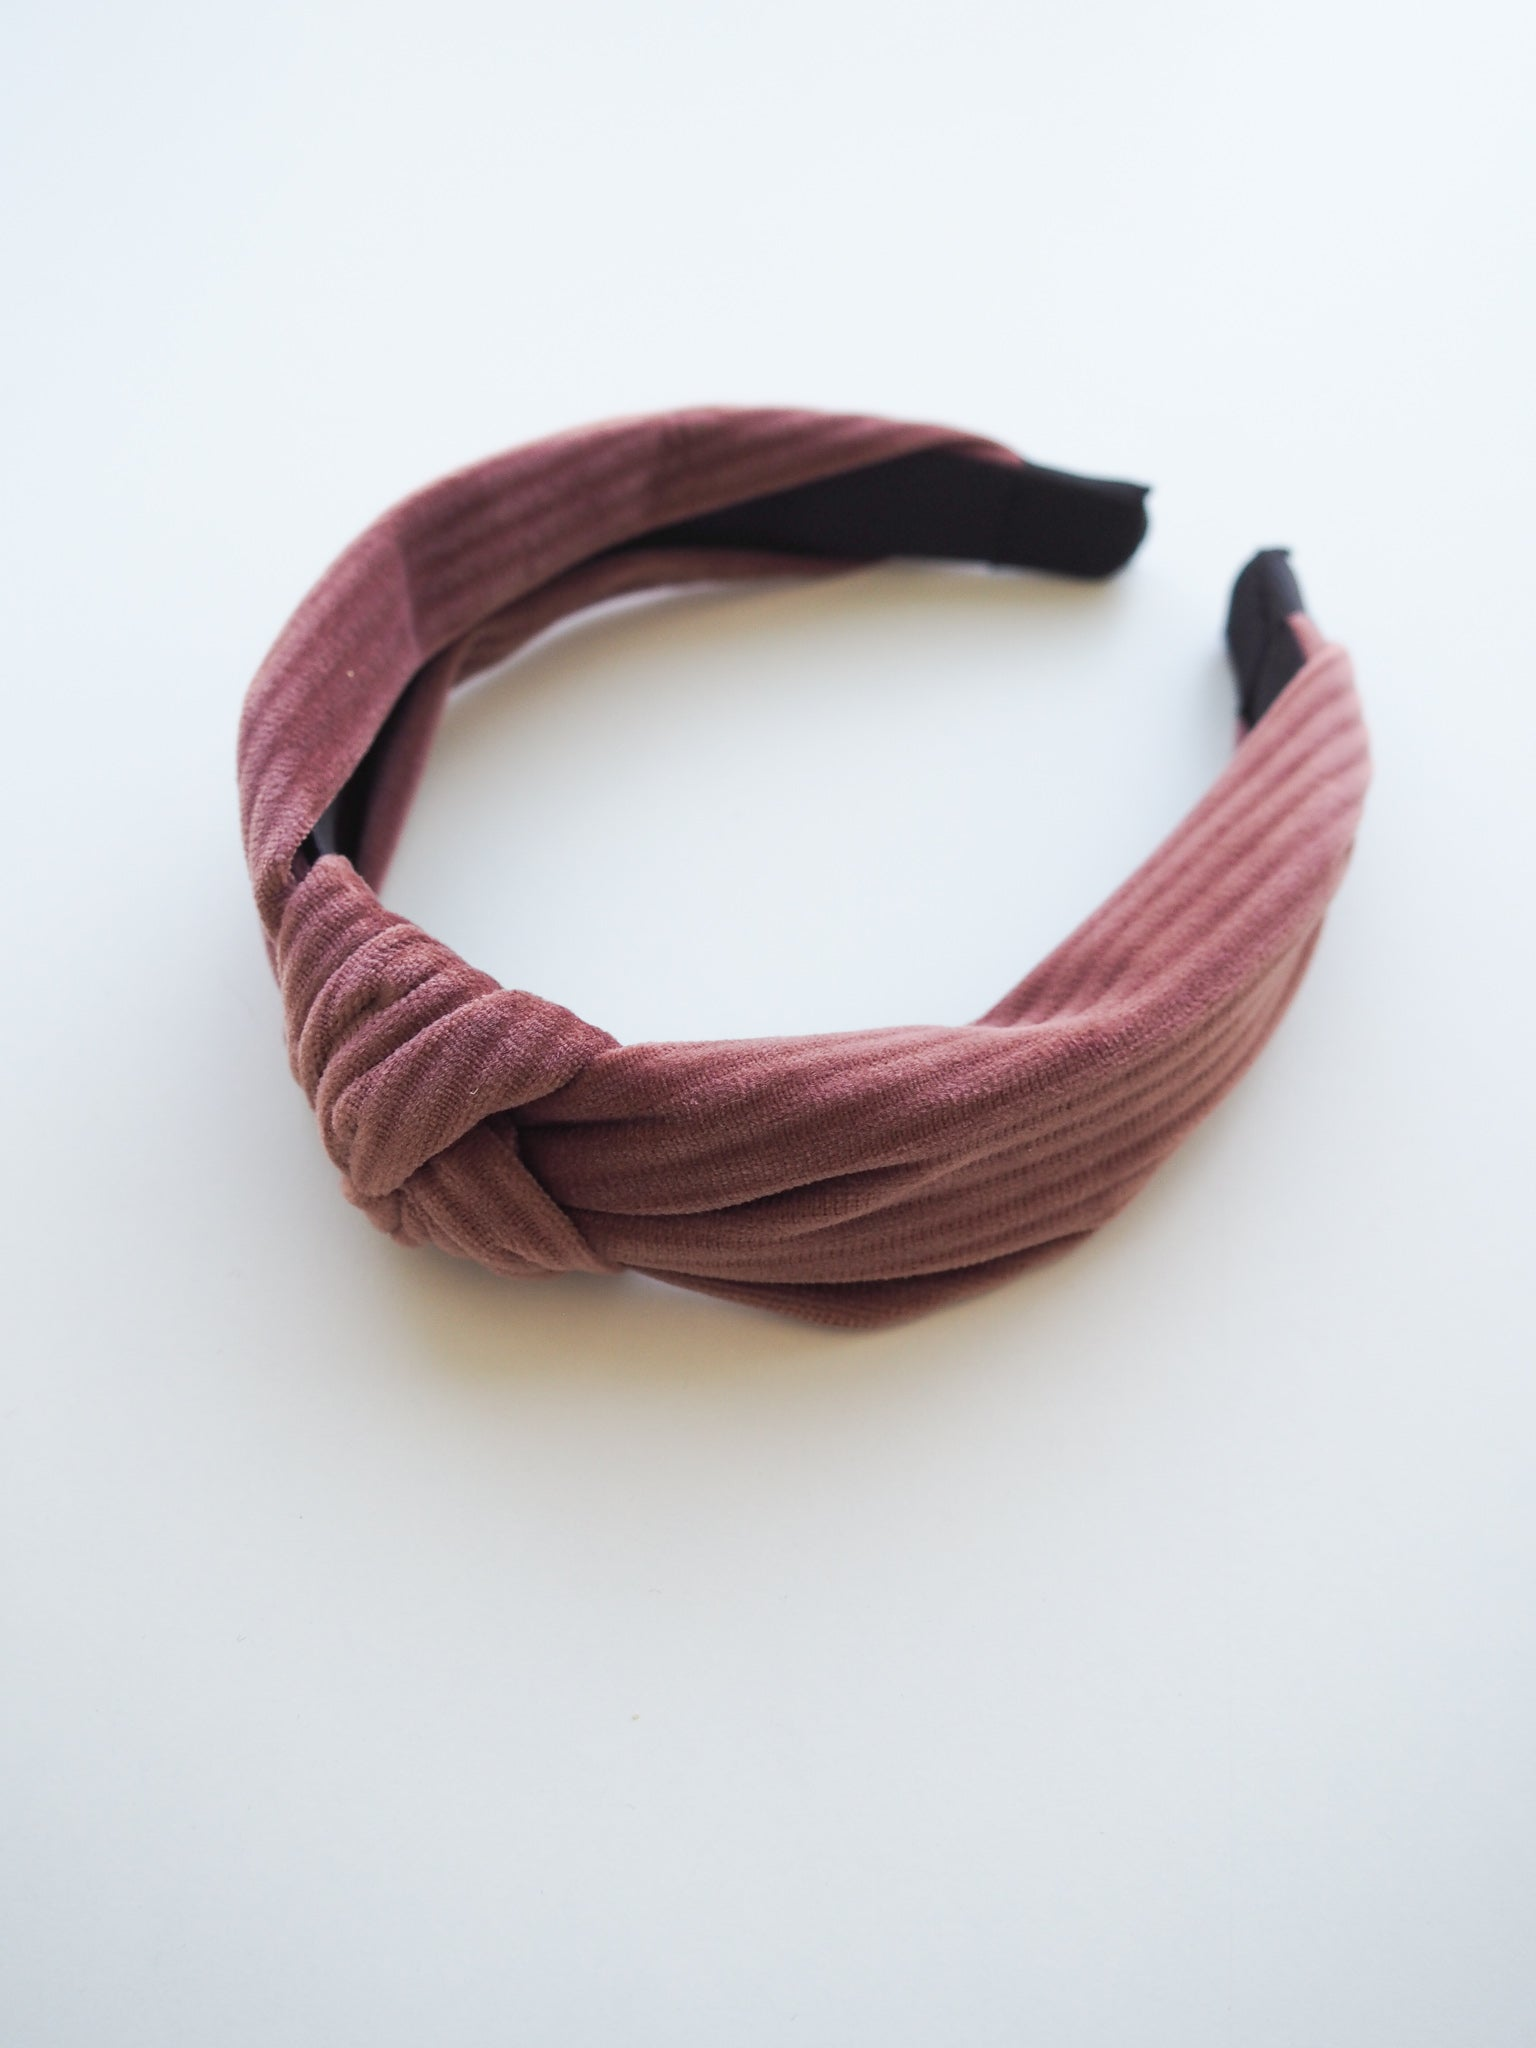 HELLO DARLING HEADBAND IN DUSTY PINK